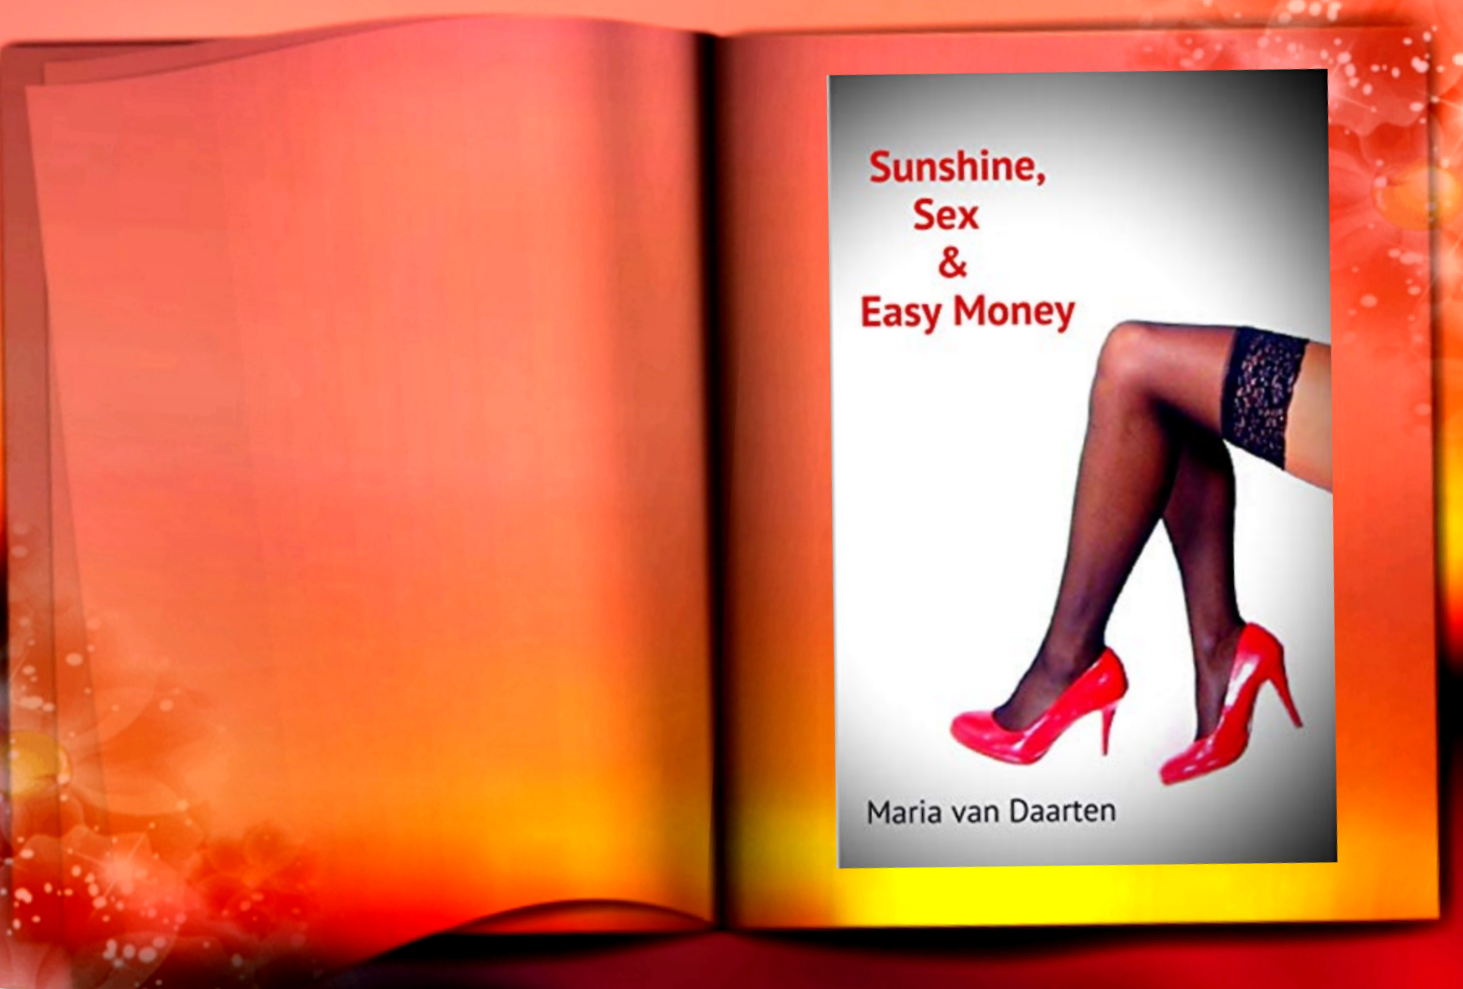 Chapter 13: Sunshine, Sex & Easy Money - Diary of a Call Girl